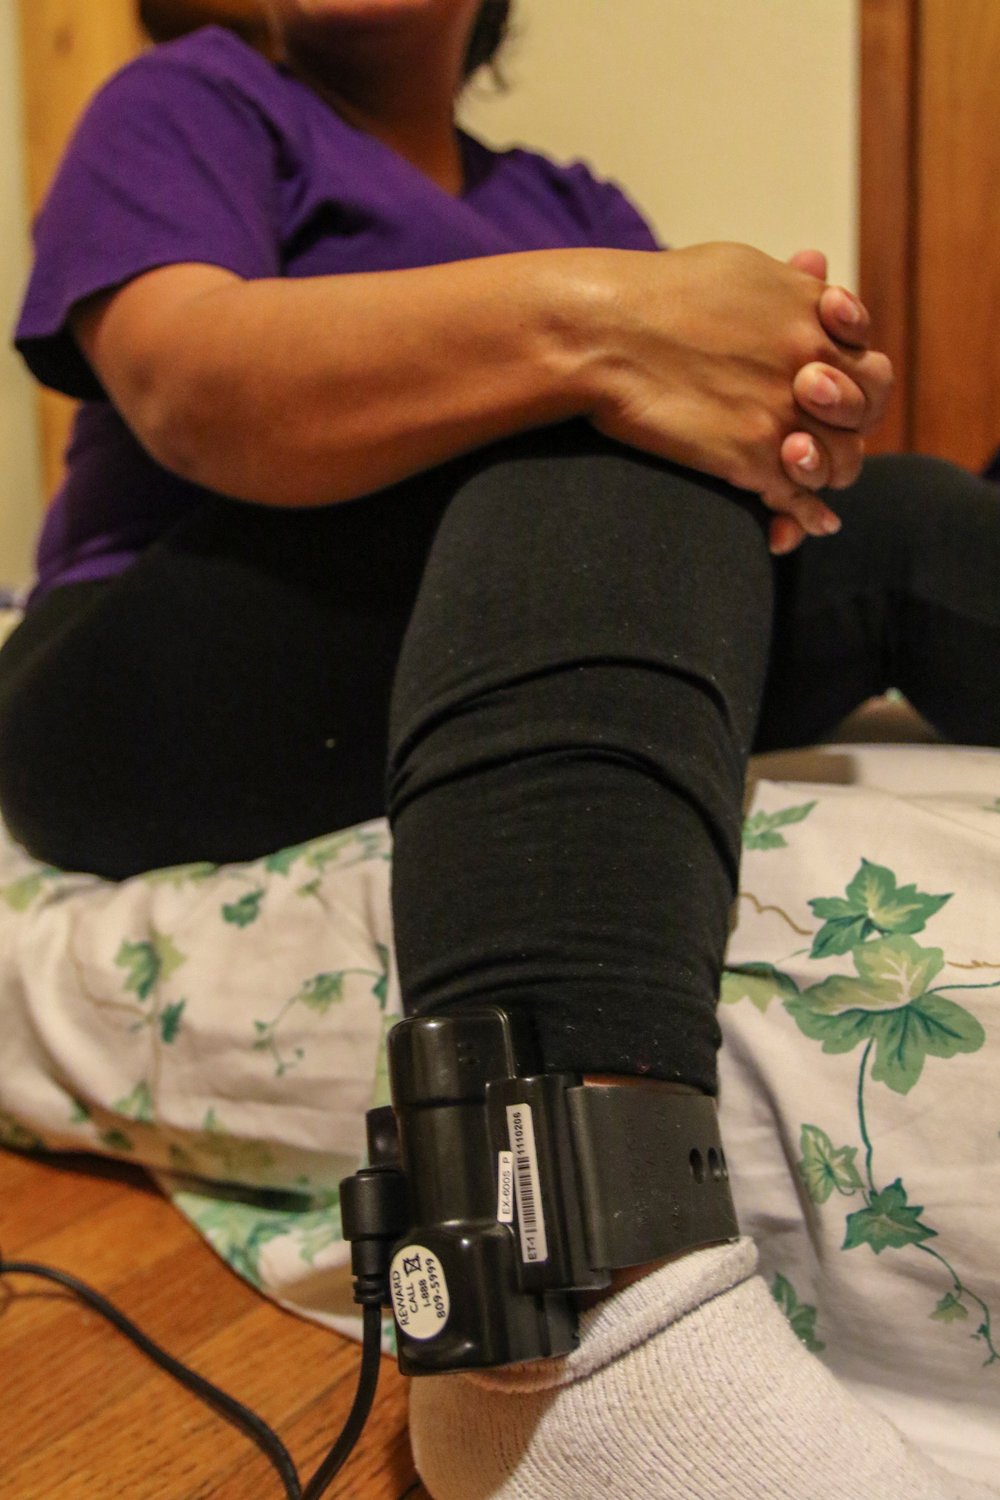 An ankle shackle monitor is applied indiscriminately to women as they are released, often without a court order. None of these women has been charged with a crime. Photo: Jeff Pearcy/UUSC